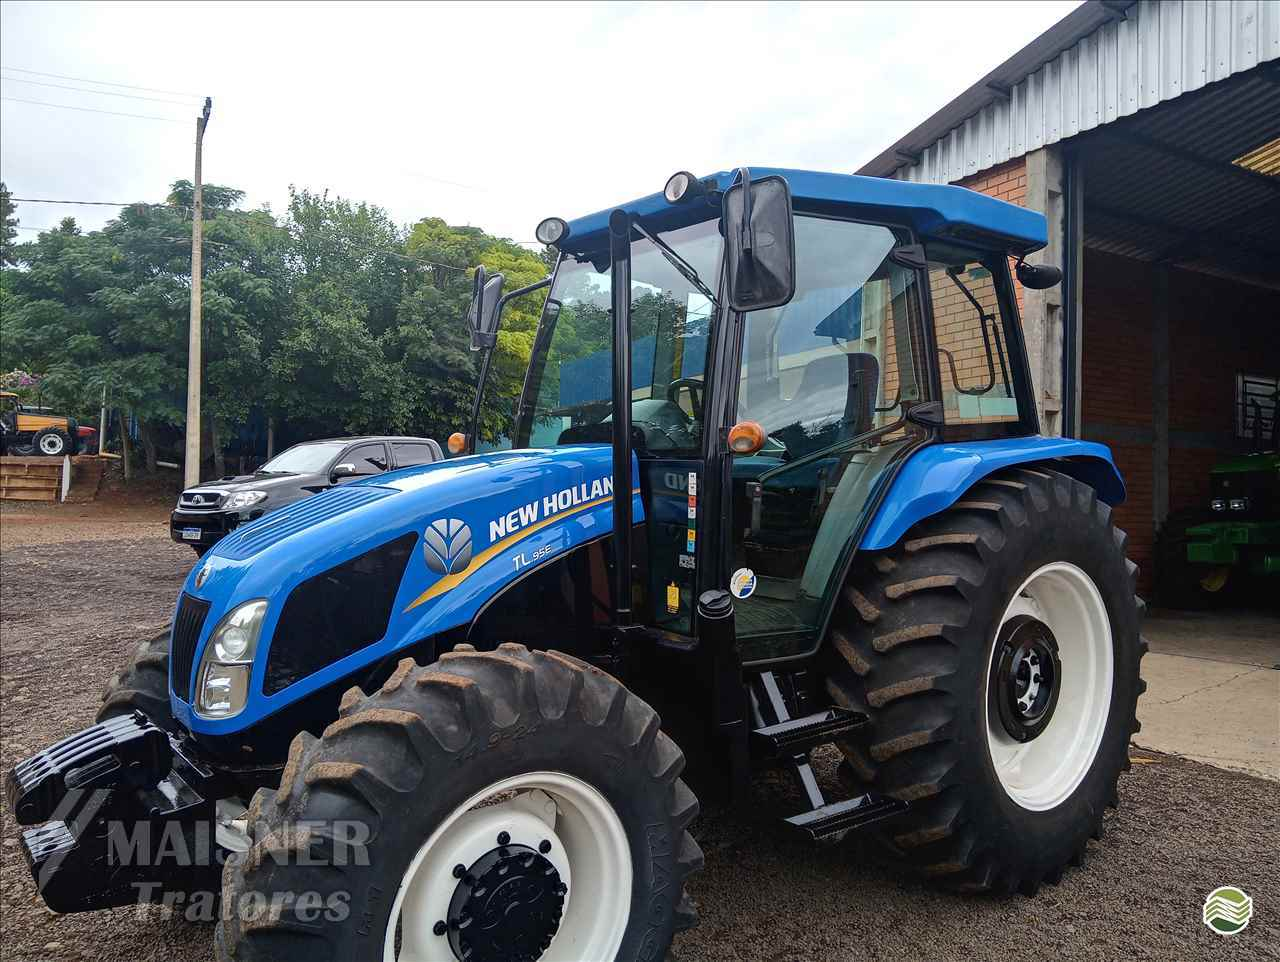 NEW HOLLAND NEW TL 95  20 Maisner Tratores